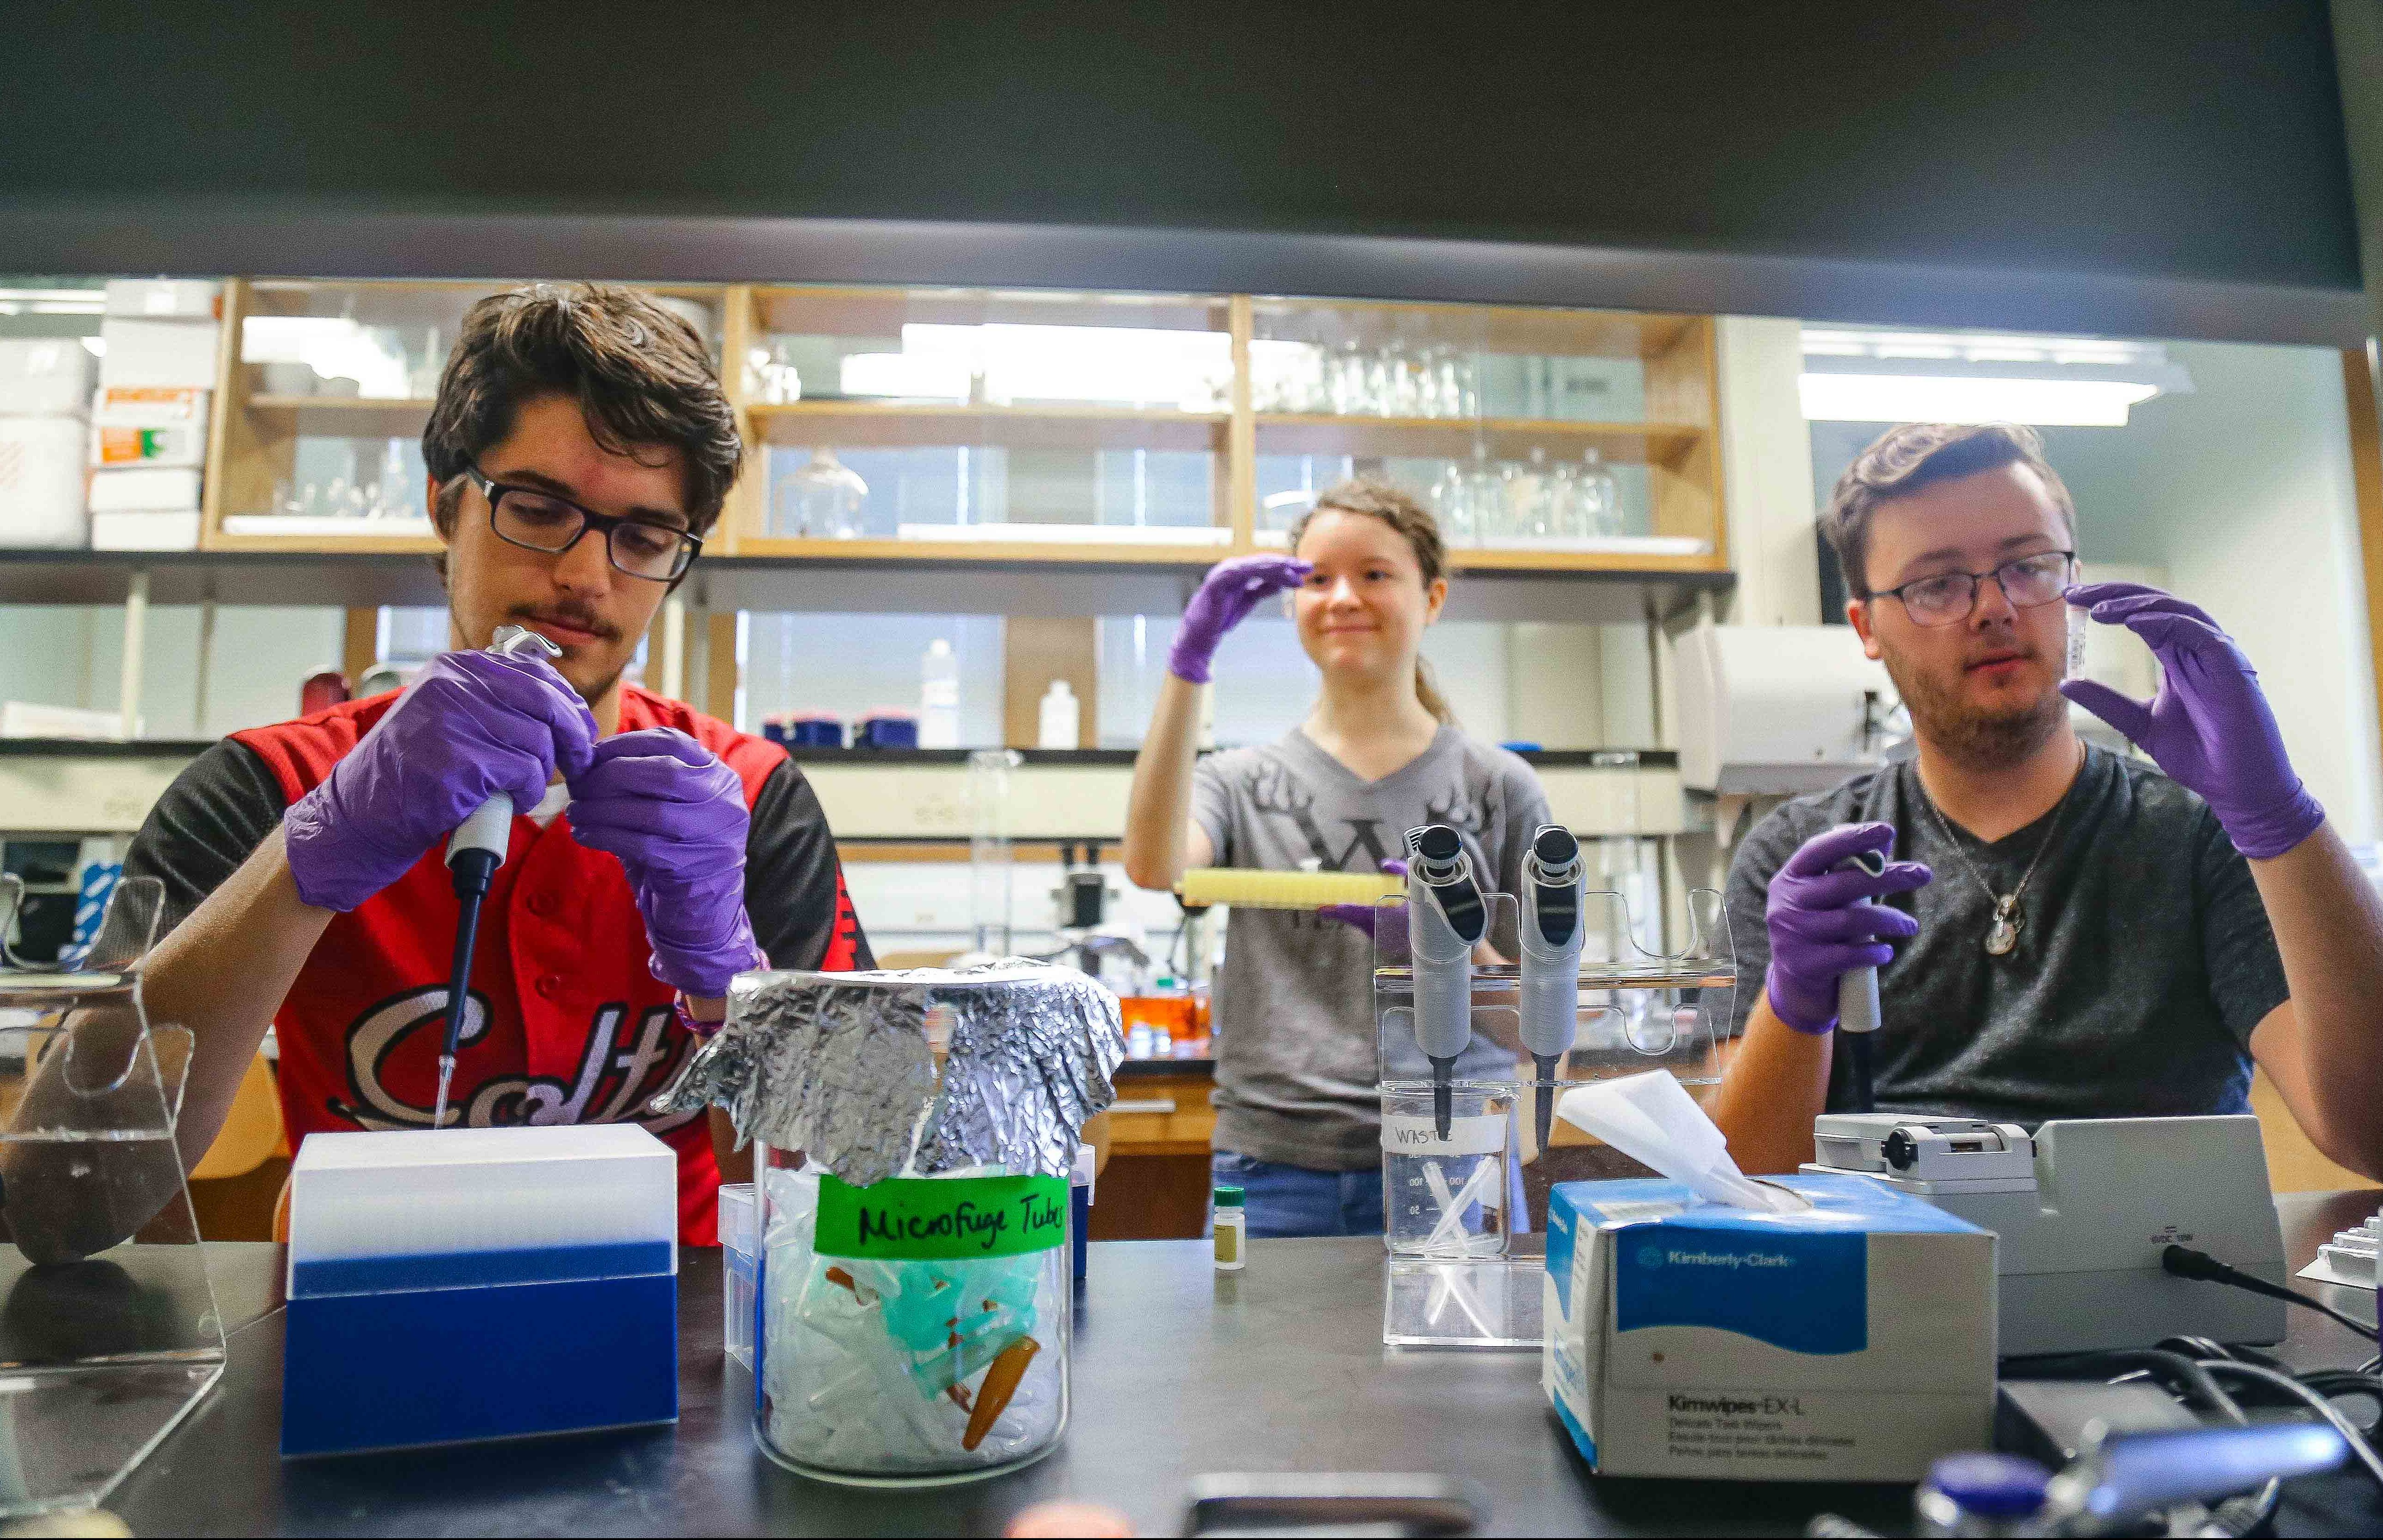 Three students wearing purple gloves working together in a lab